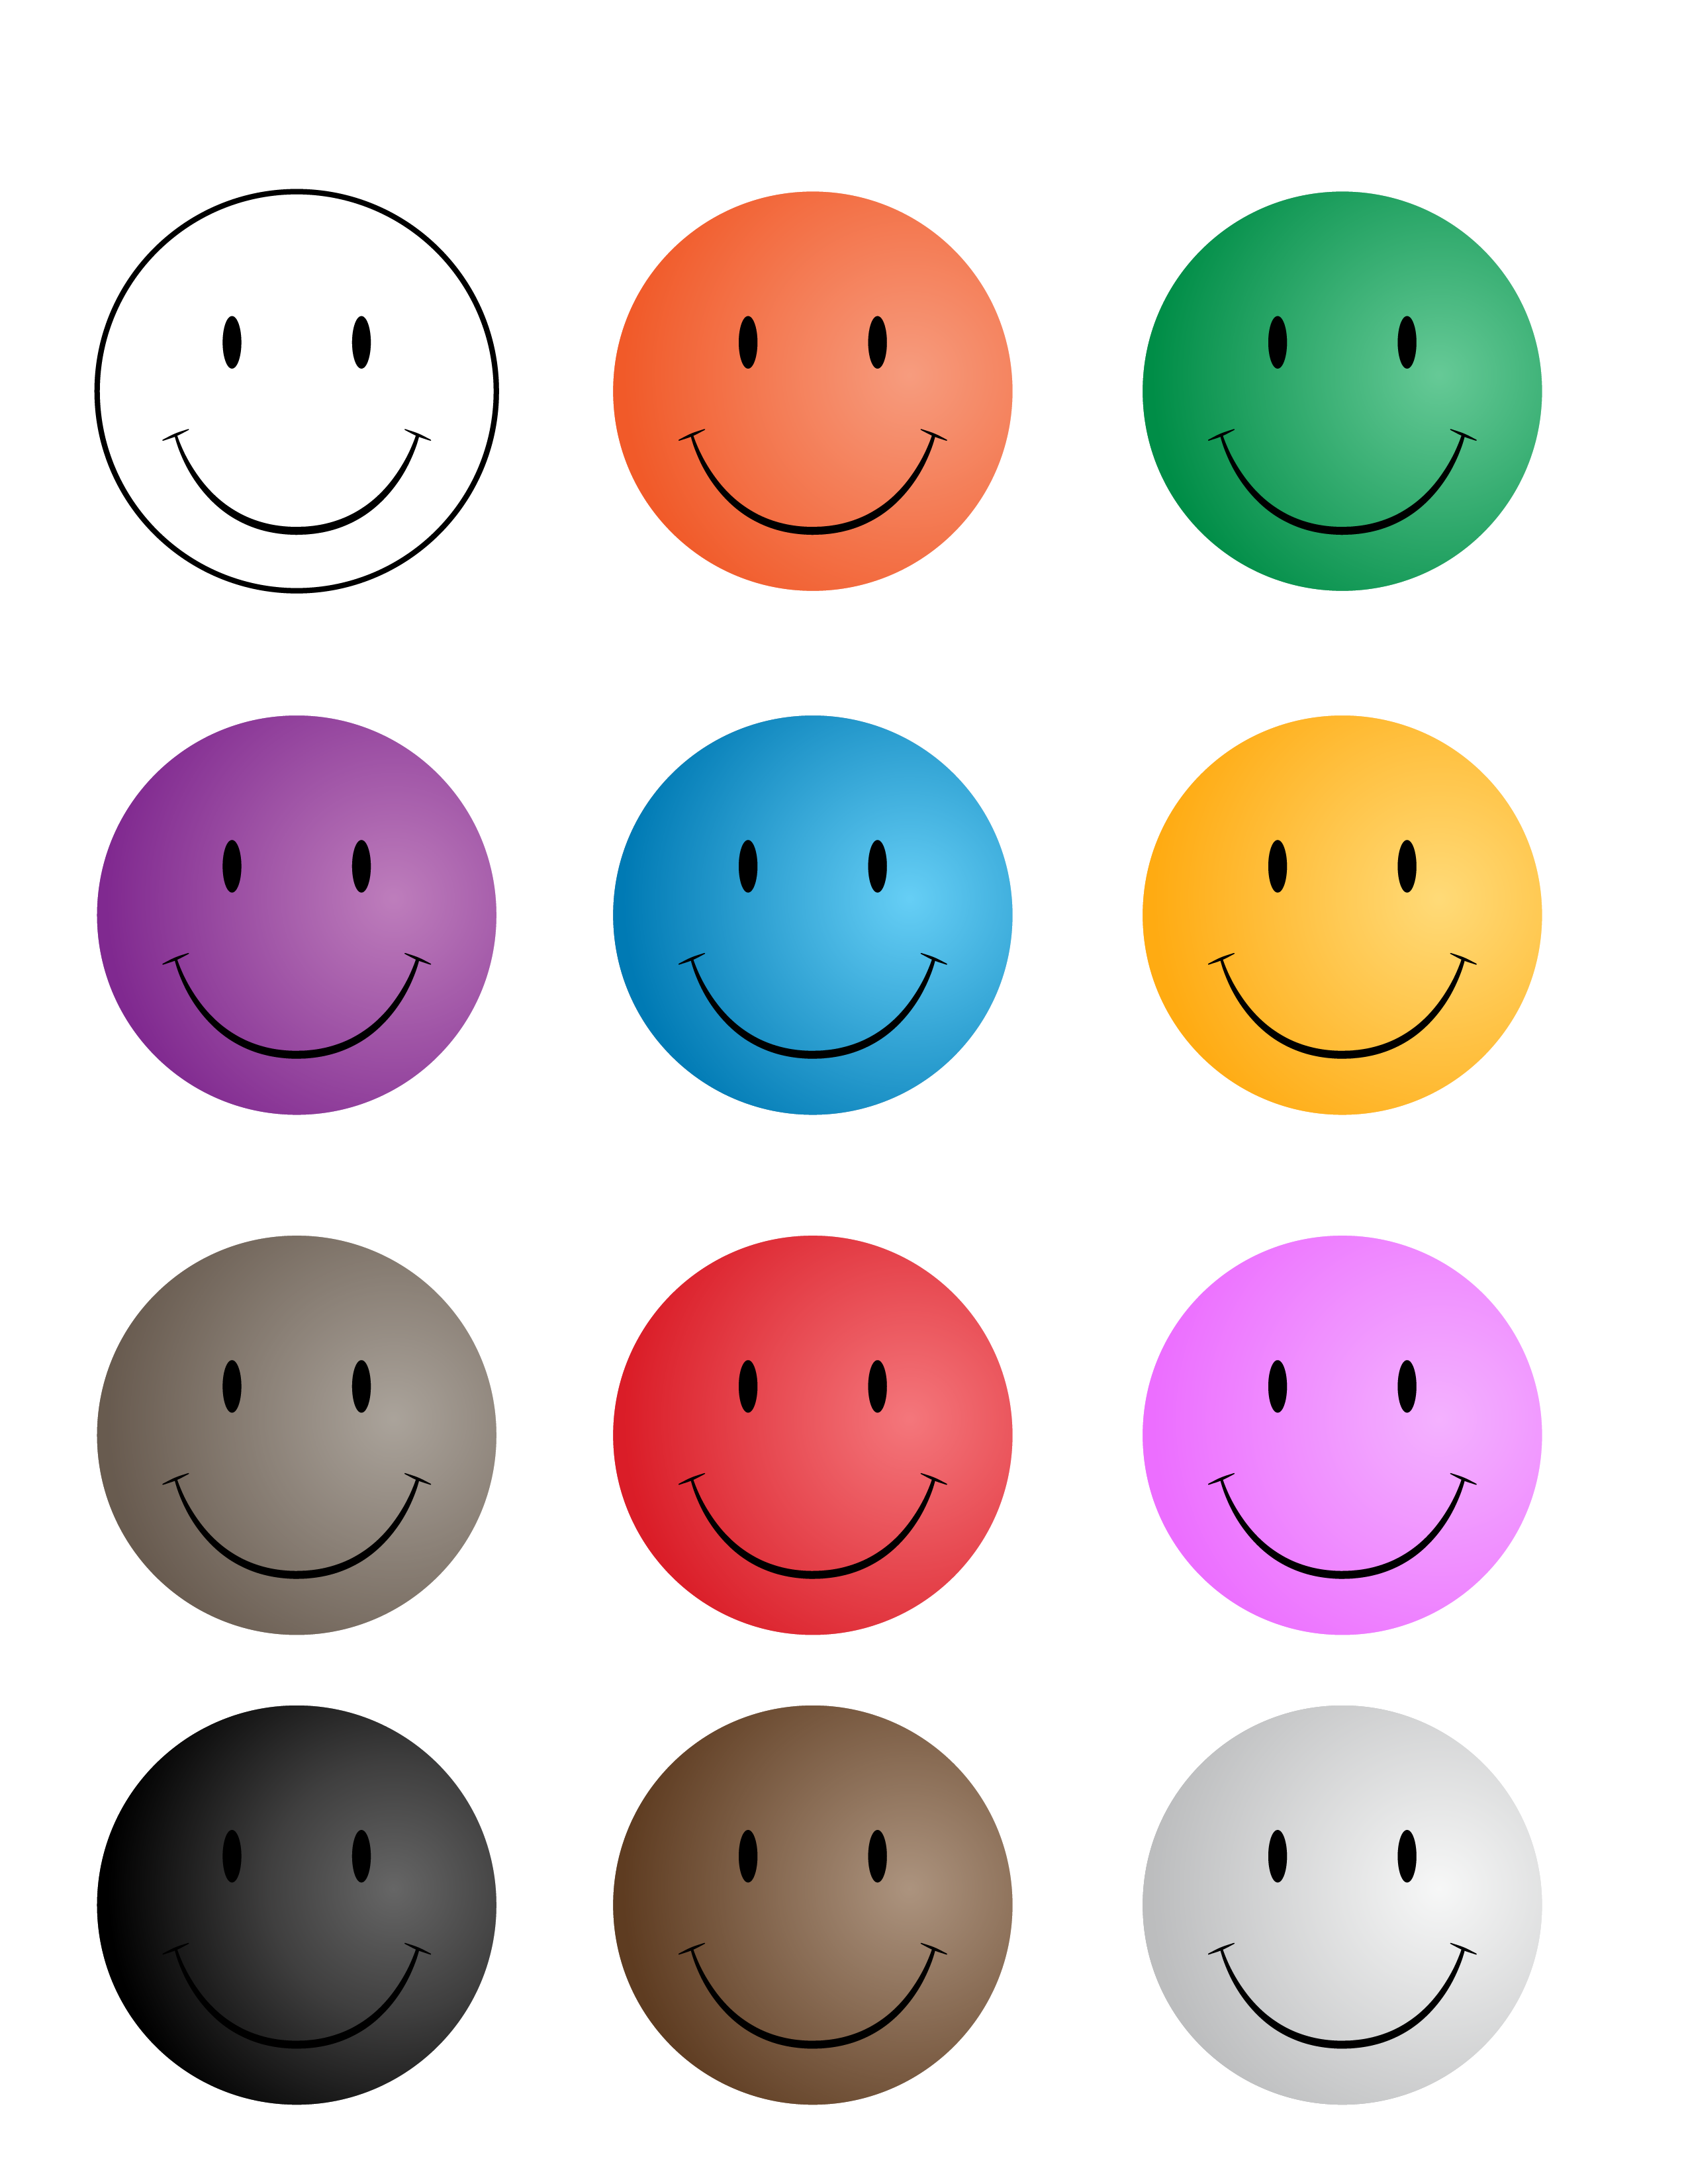 picture relating to Smiley Face Printable identify Smiley-Faces-450w Printables No cost smiley faces, Smiley, Encounter